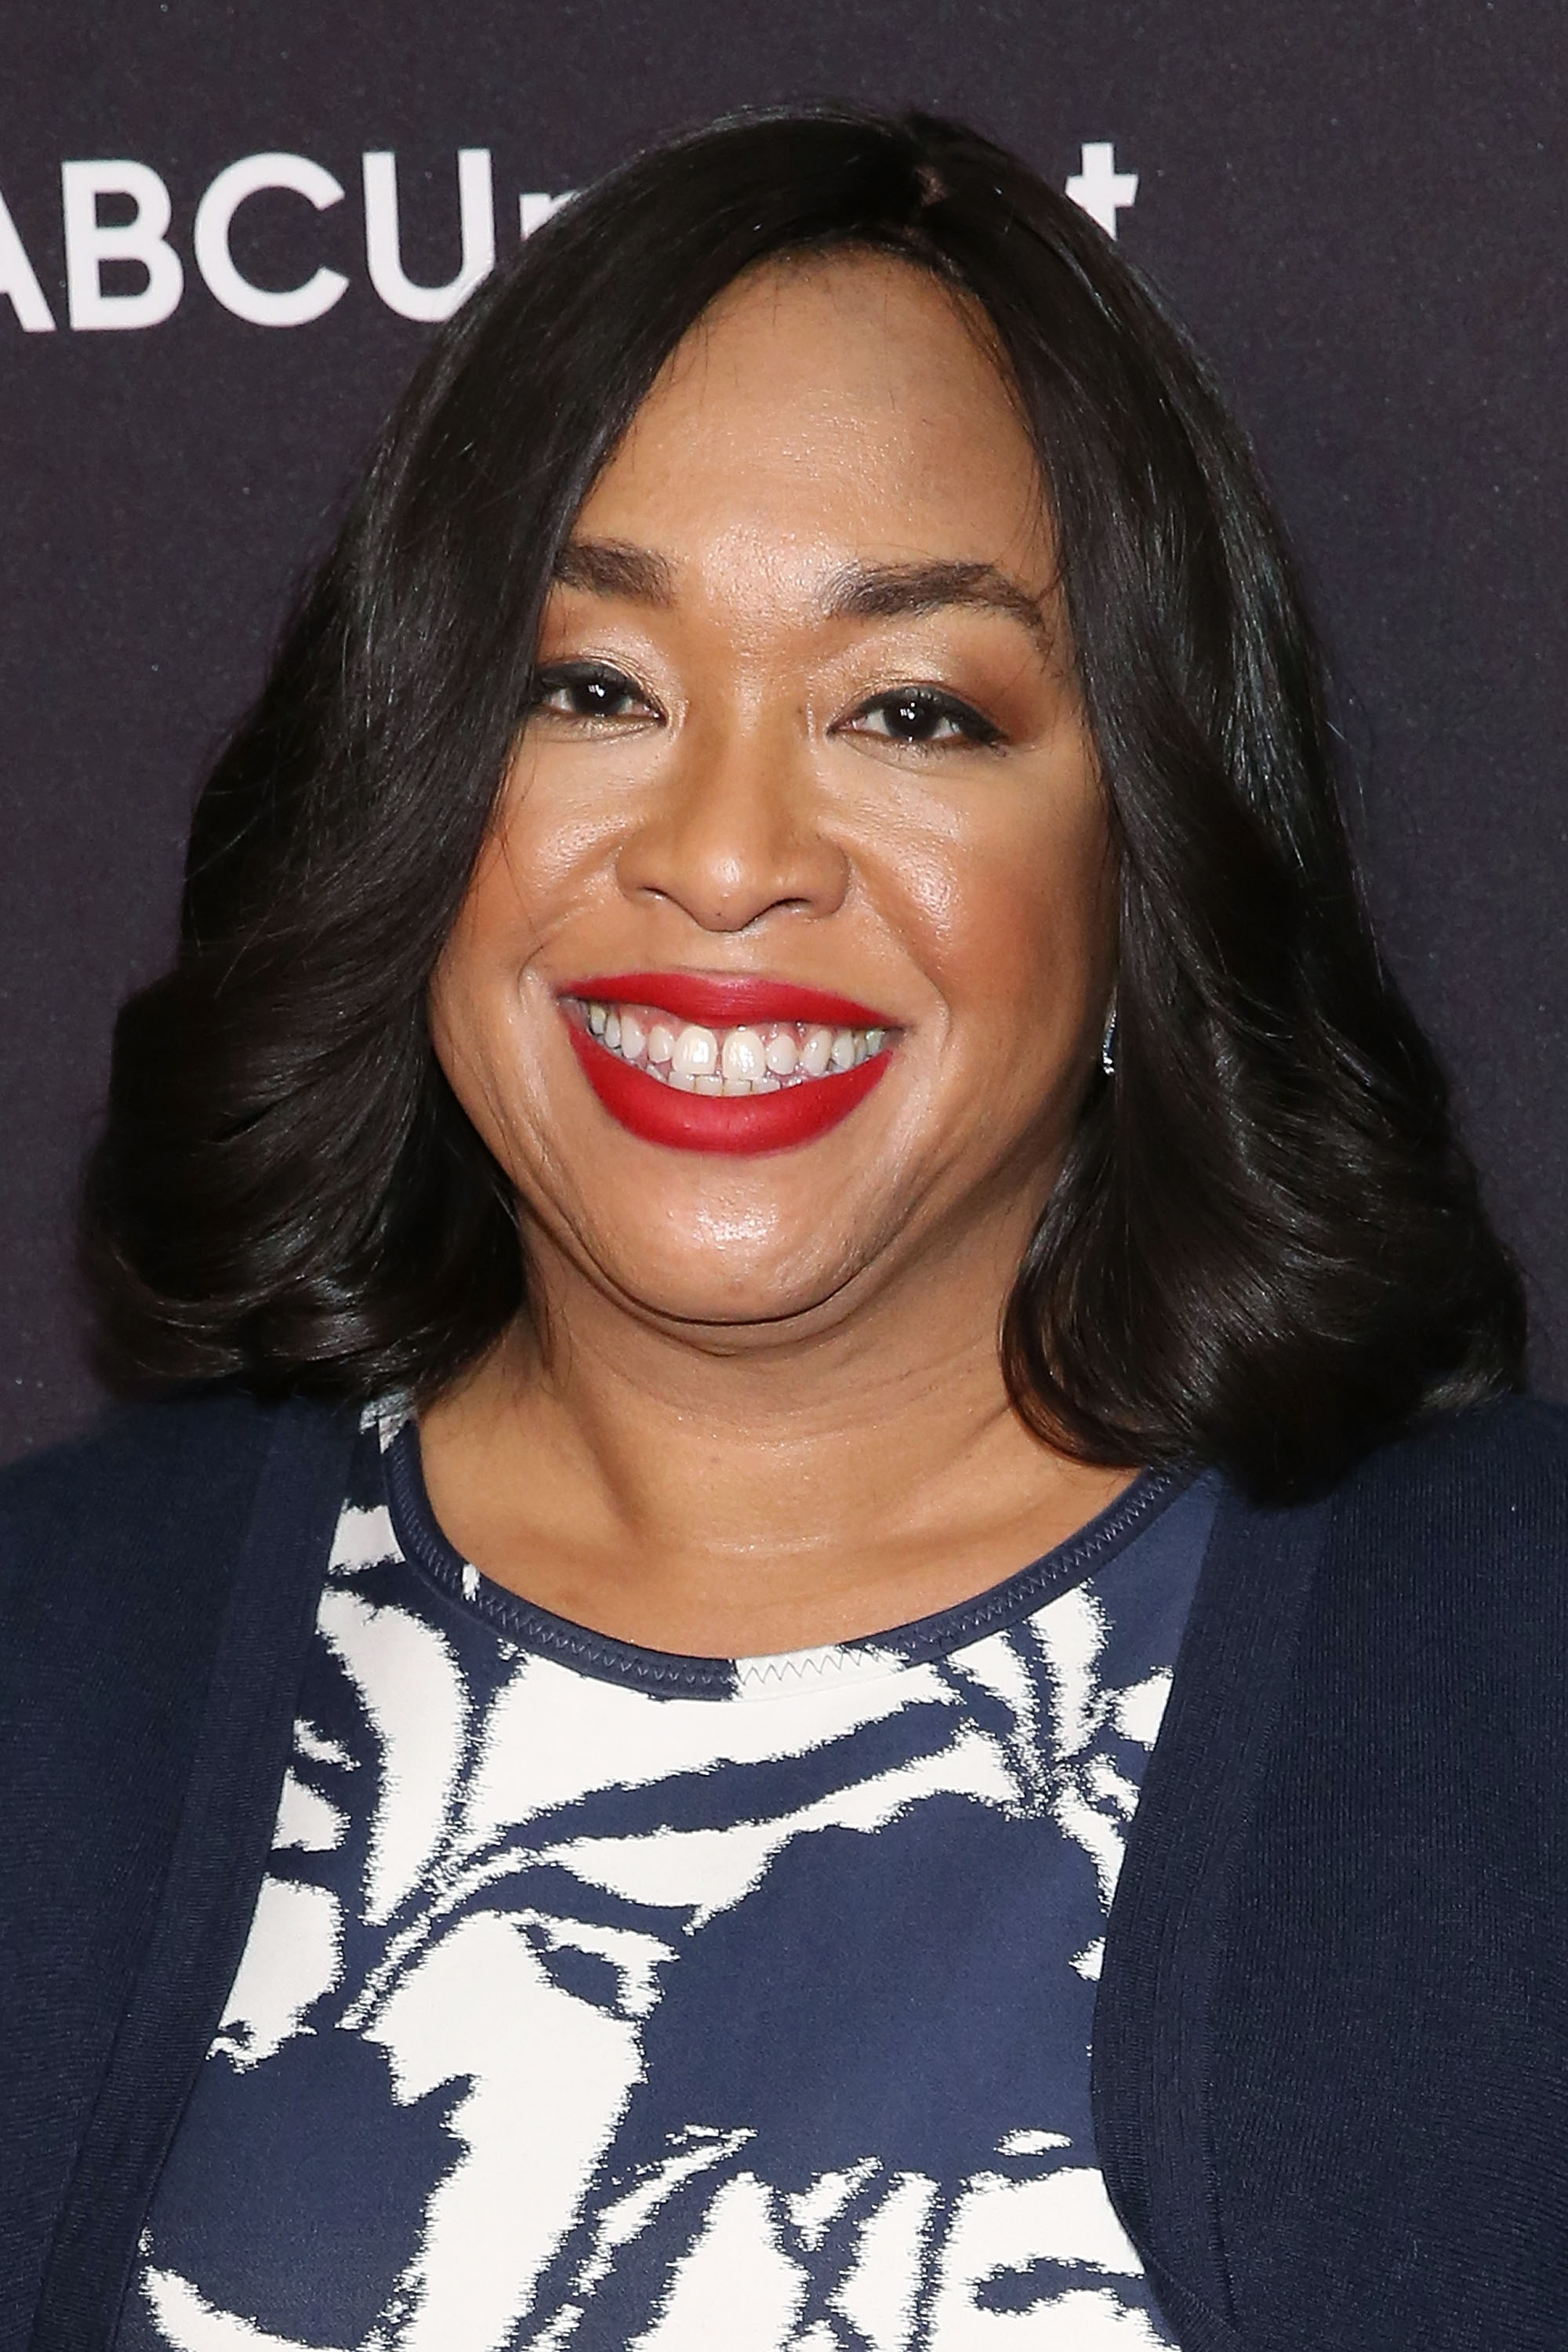 Shonda Rhimes attends the 2015 ABC NY Upfront Presentation on May 12, 2015 in New York City.